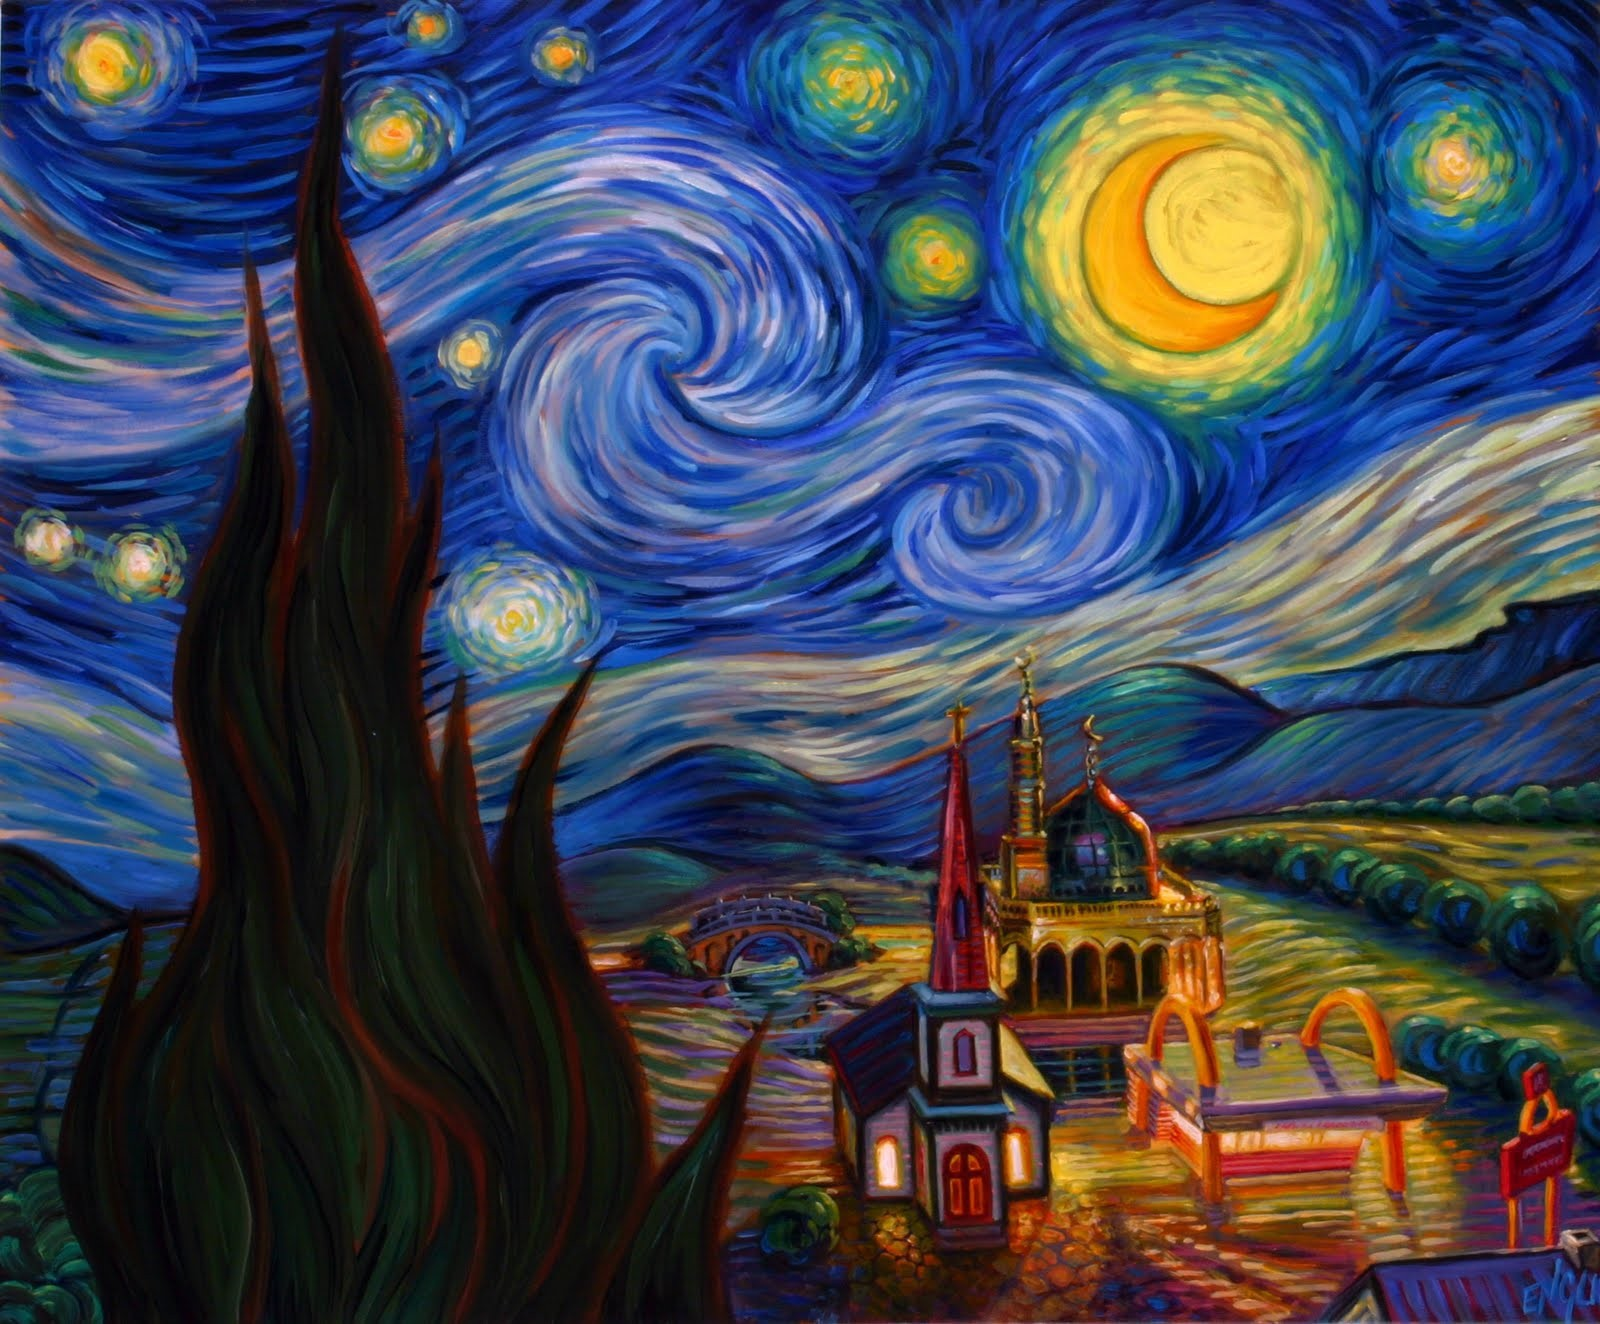 van gogh s starry night and salvador An acrylic copy painting on canvas after the original painting by famed post-impressionist vincent van gogh (1853 – 1890) titled starry night salvador dali.